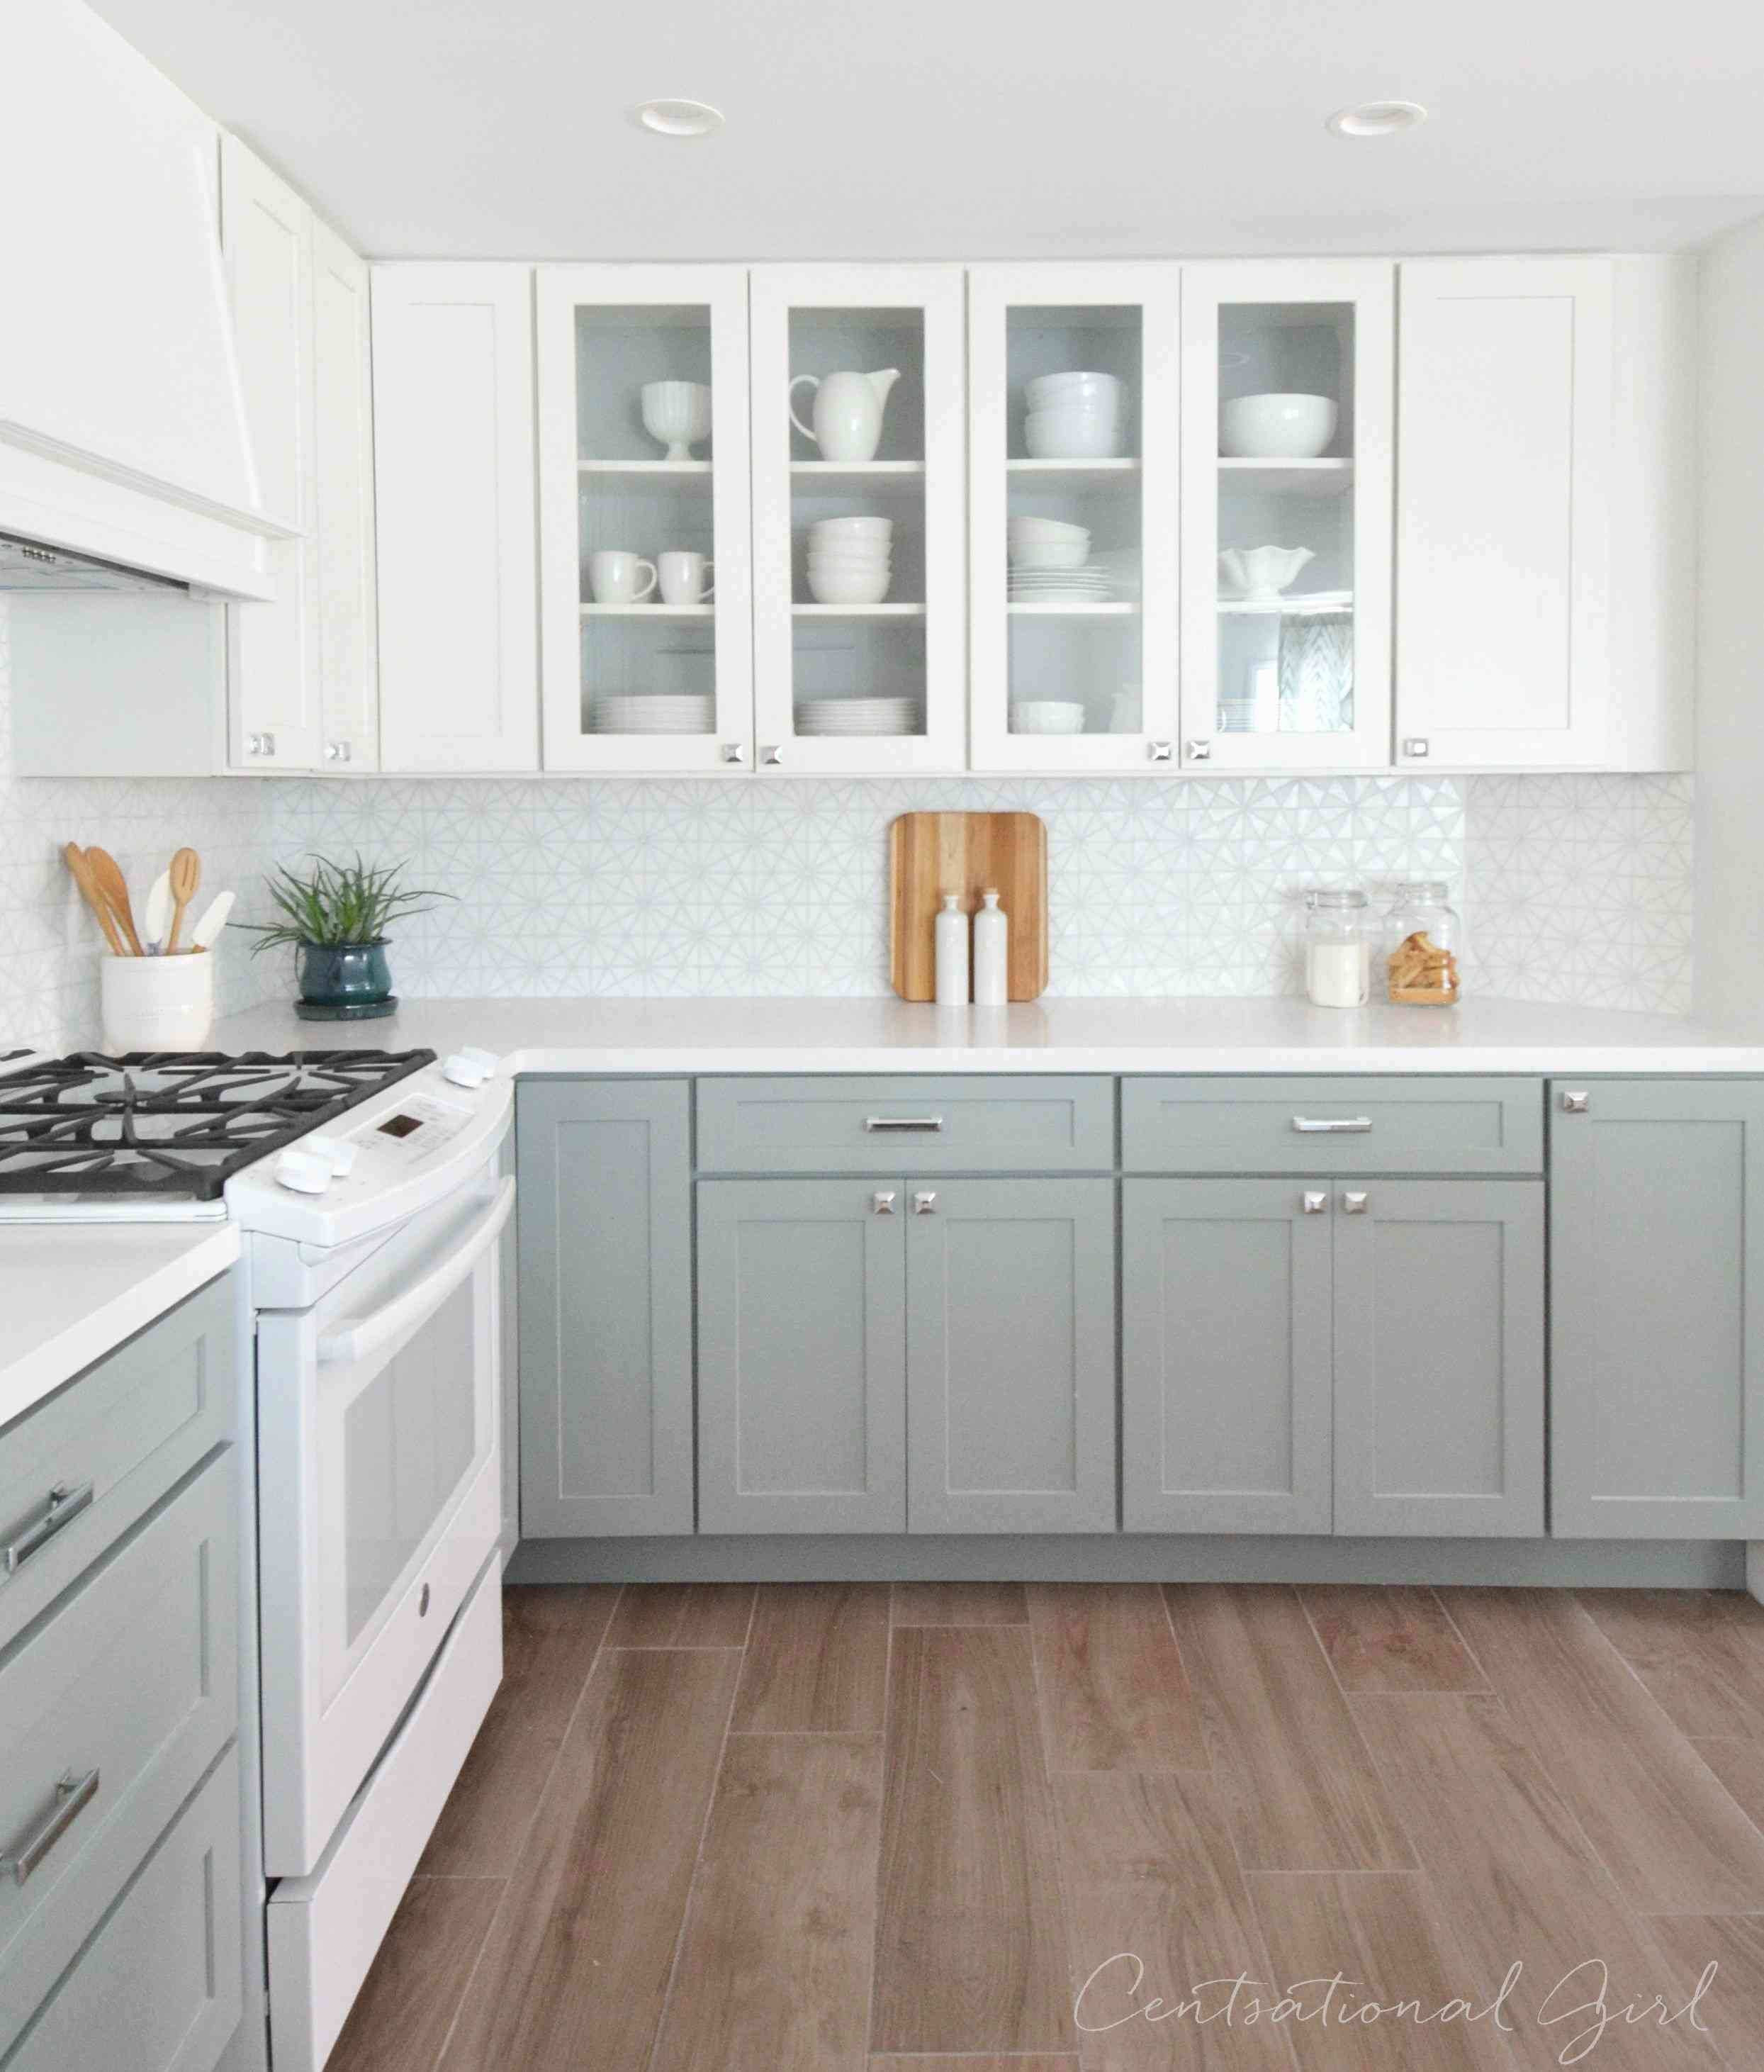 hardwood floor and wall color combinations of white kitchen color backsplash elegant surprising small backsplash within white kitchen color backsplash lovely backsplash white cabinets kitchen joys kitchen joys kitchen 0d of white